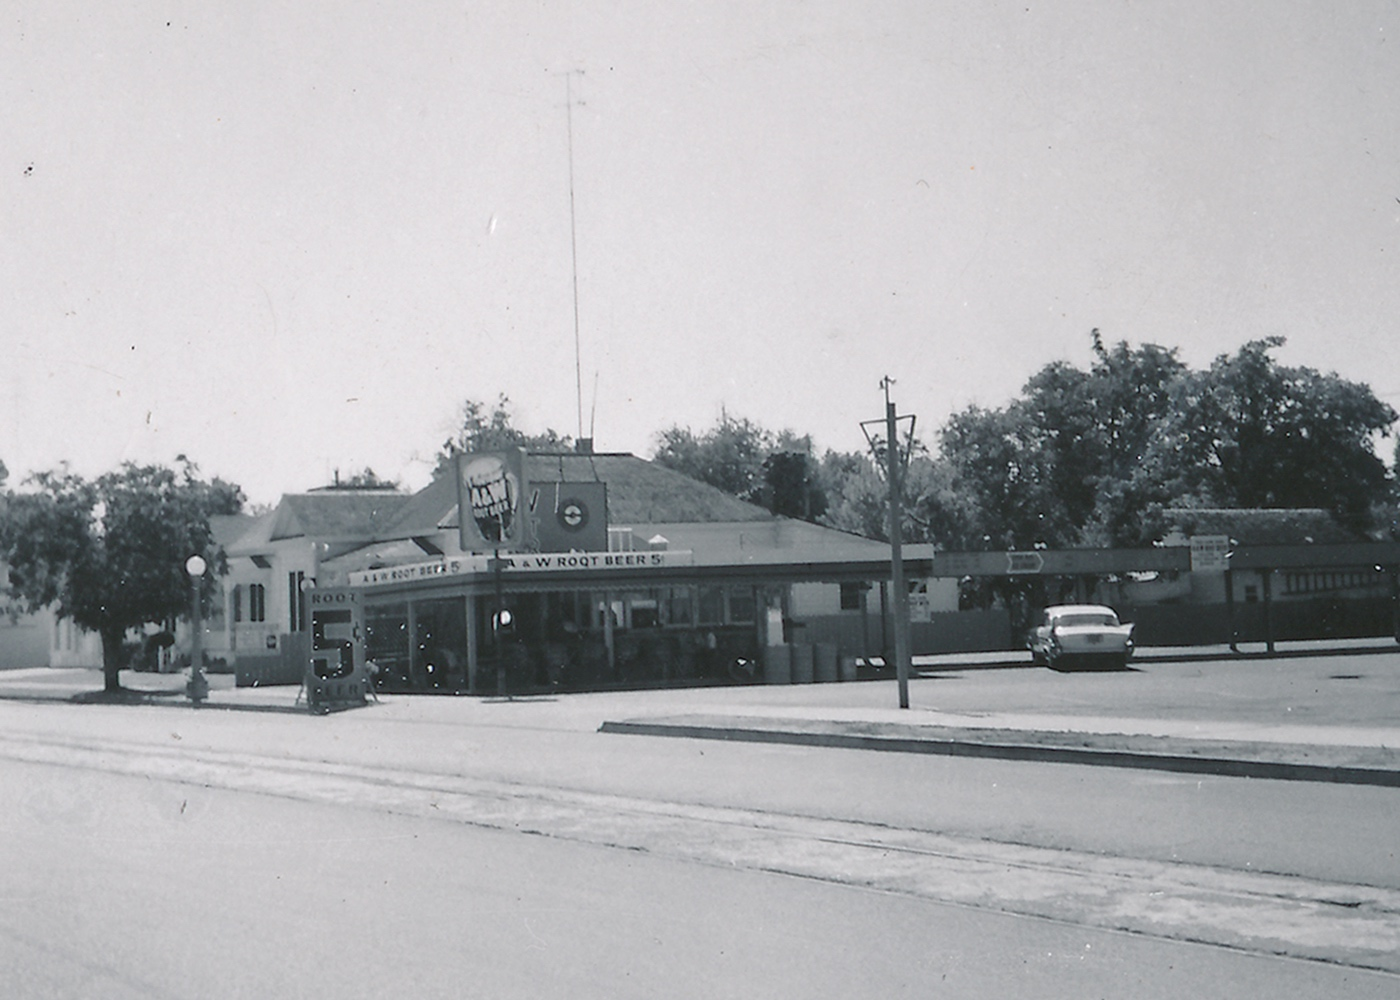 Black and white photo of A&W Restaurant in Lodi, California